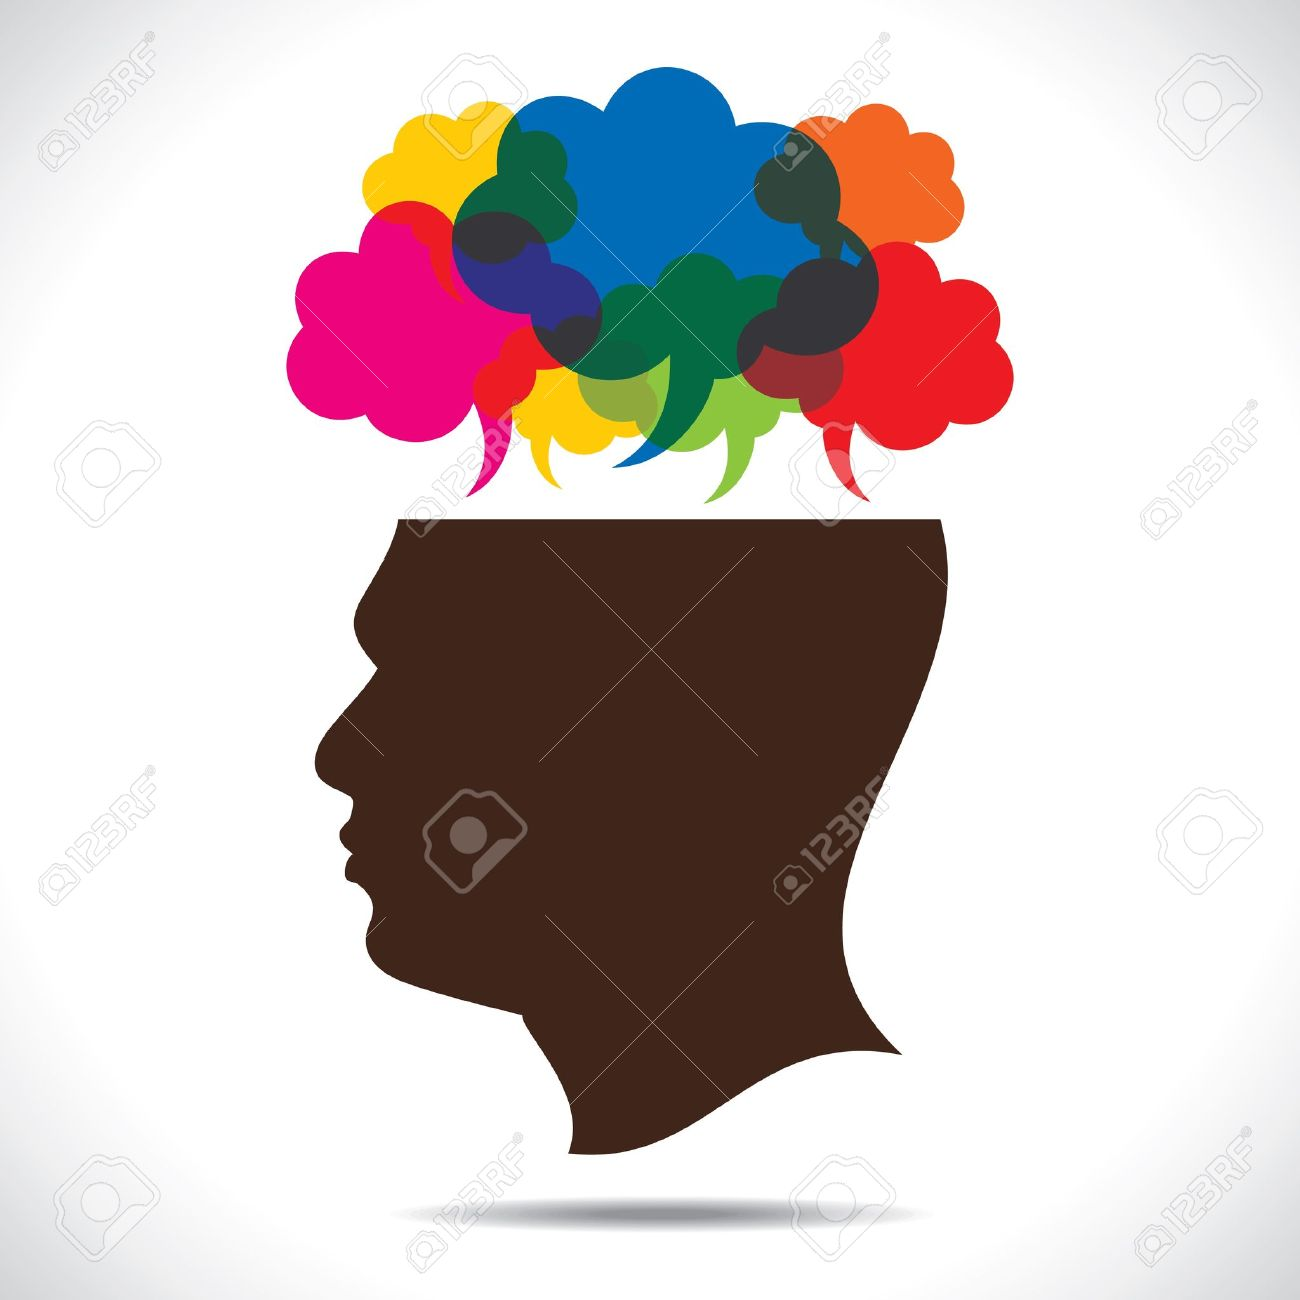 message bubble in human head stock vector - 17763195